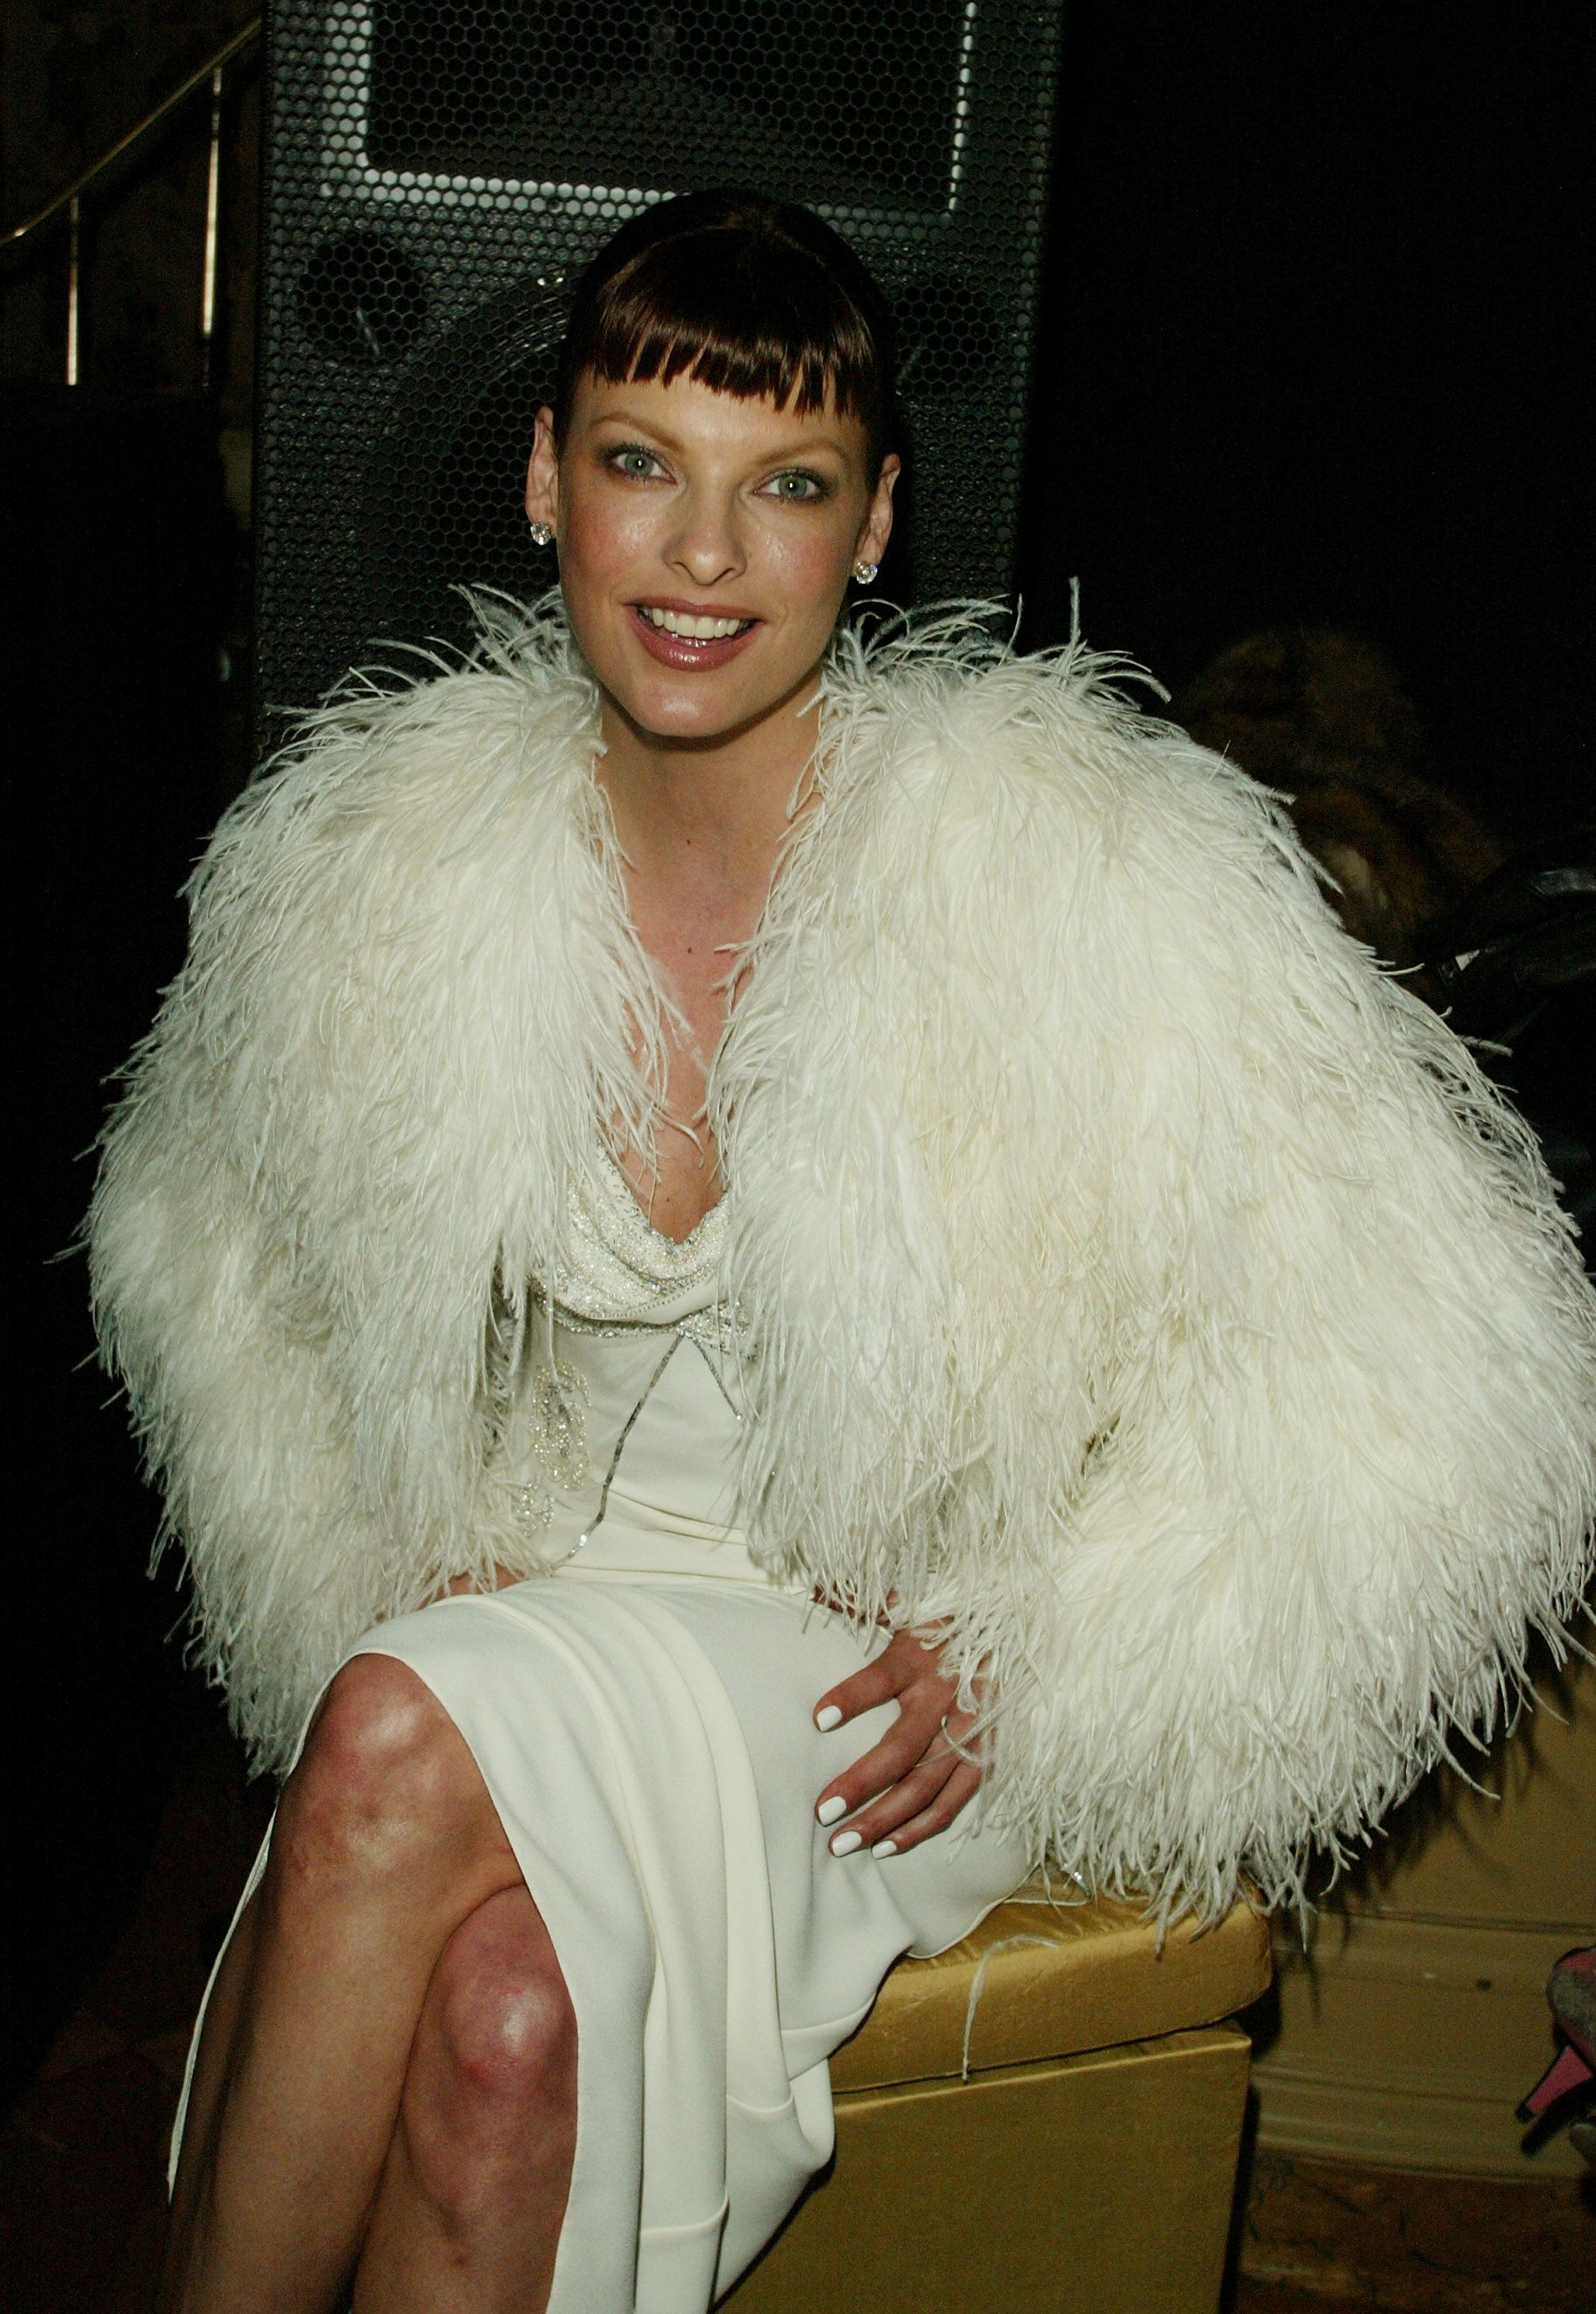 """Linda Evangelista at the Christian Dior Couture sponsored party, """"An Evening of Nouveau Glamour,"""" at The Frick Collection in New York City 